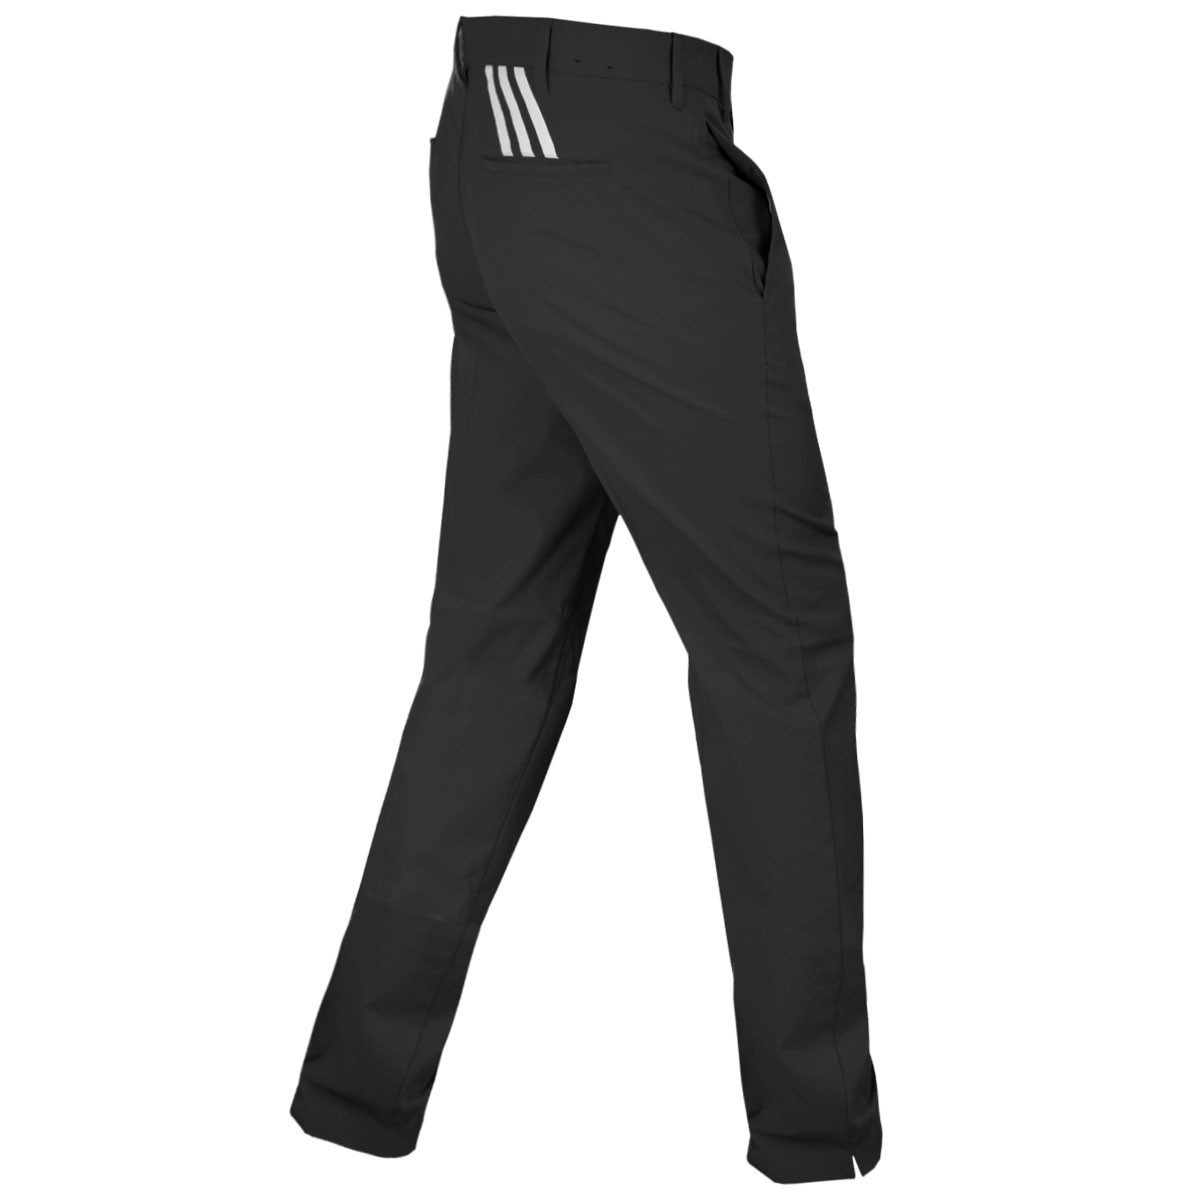 ea9992179 adidas Golf Mens Puremotion 3-Stripes Pant Trousers - Trousers ...